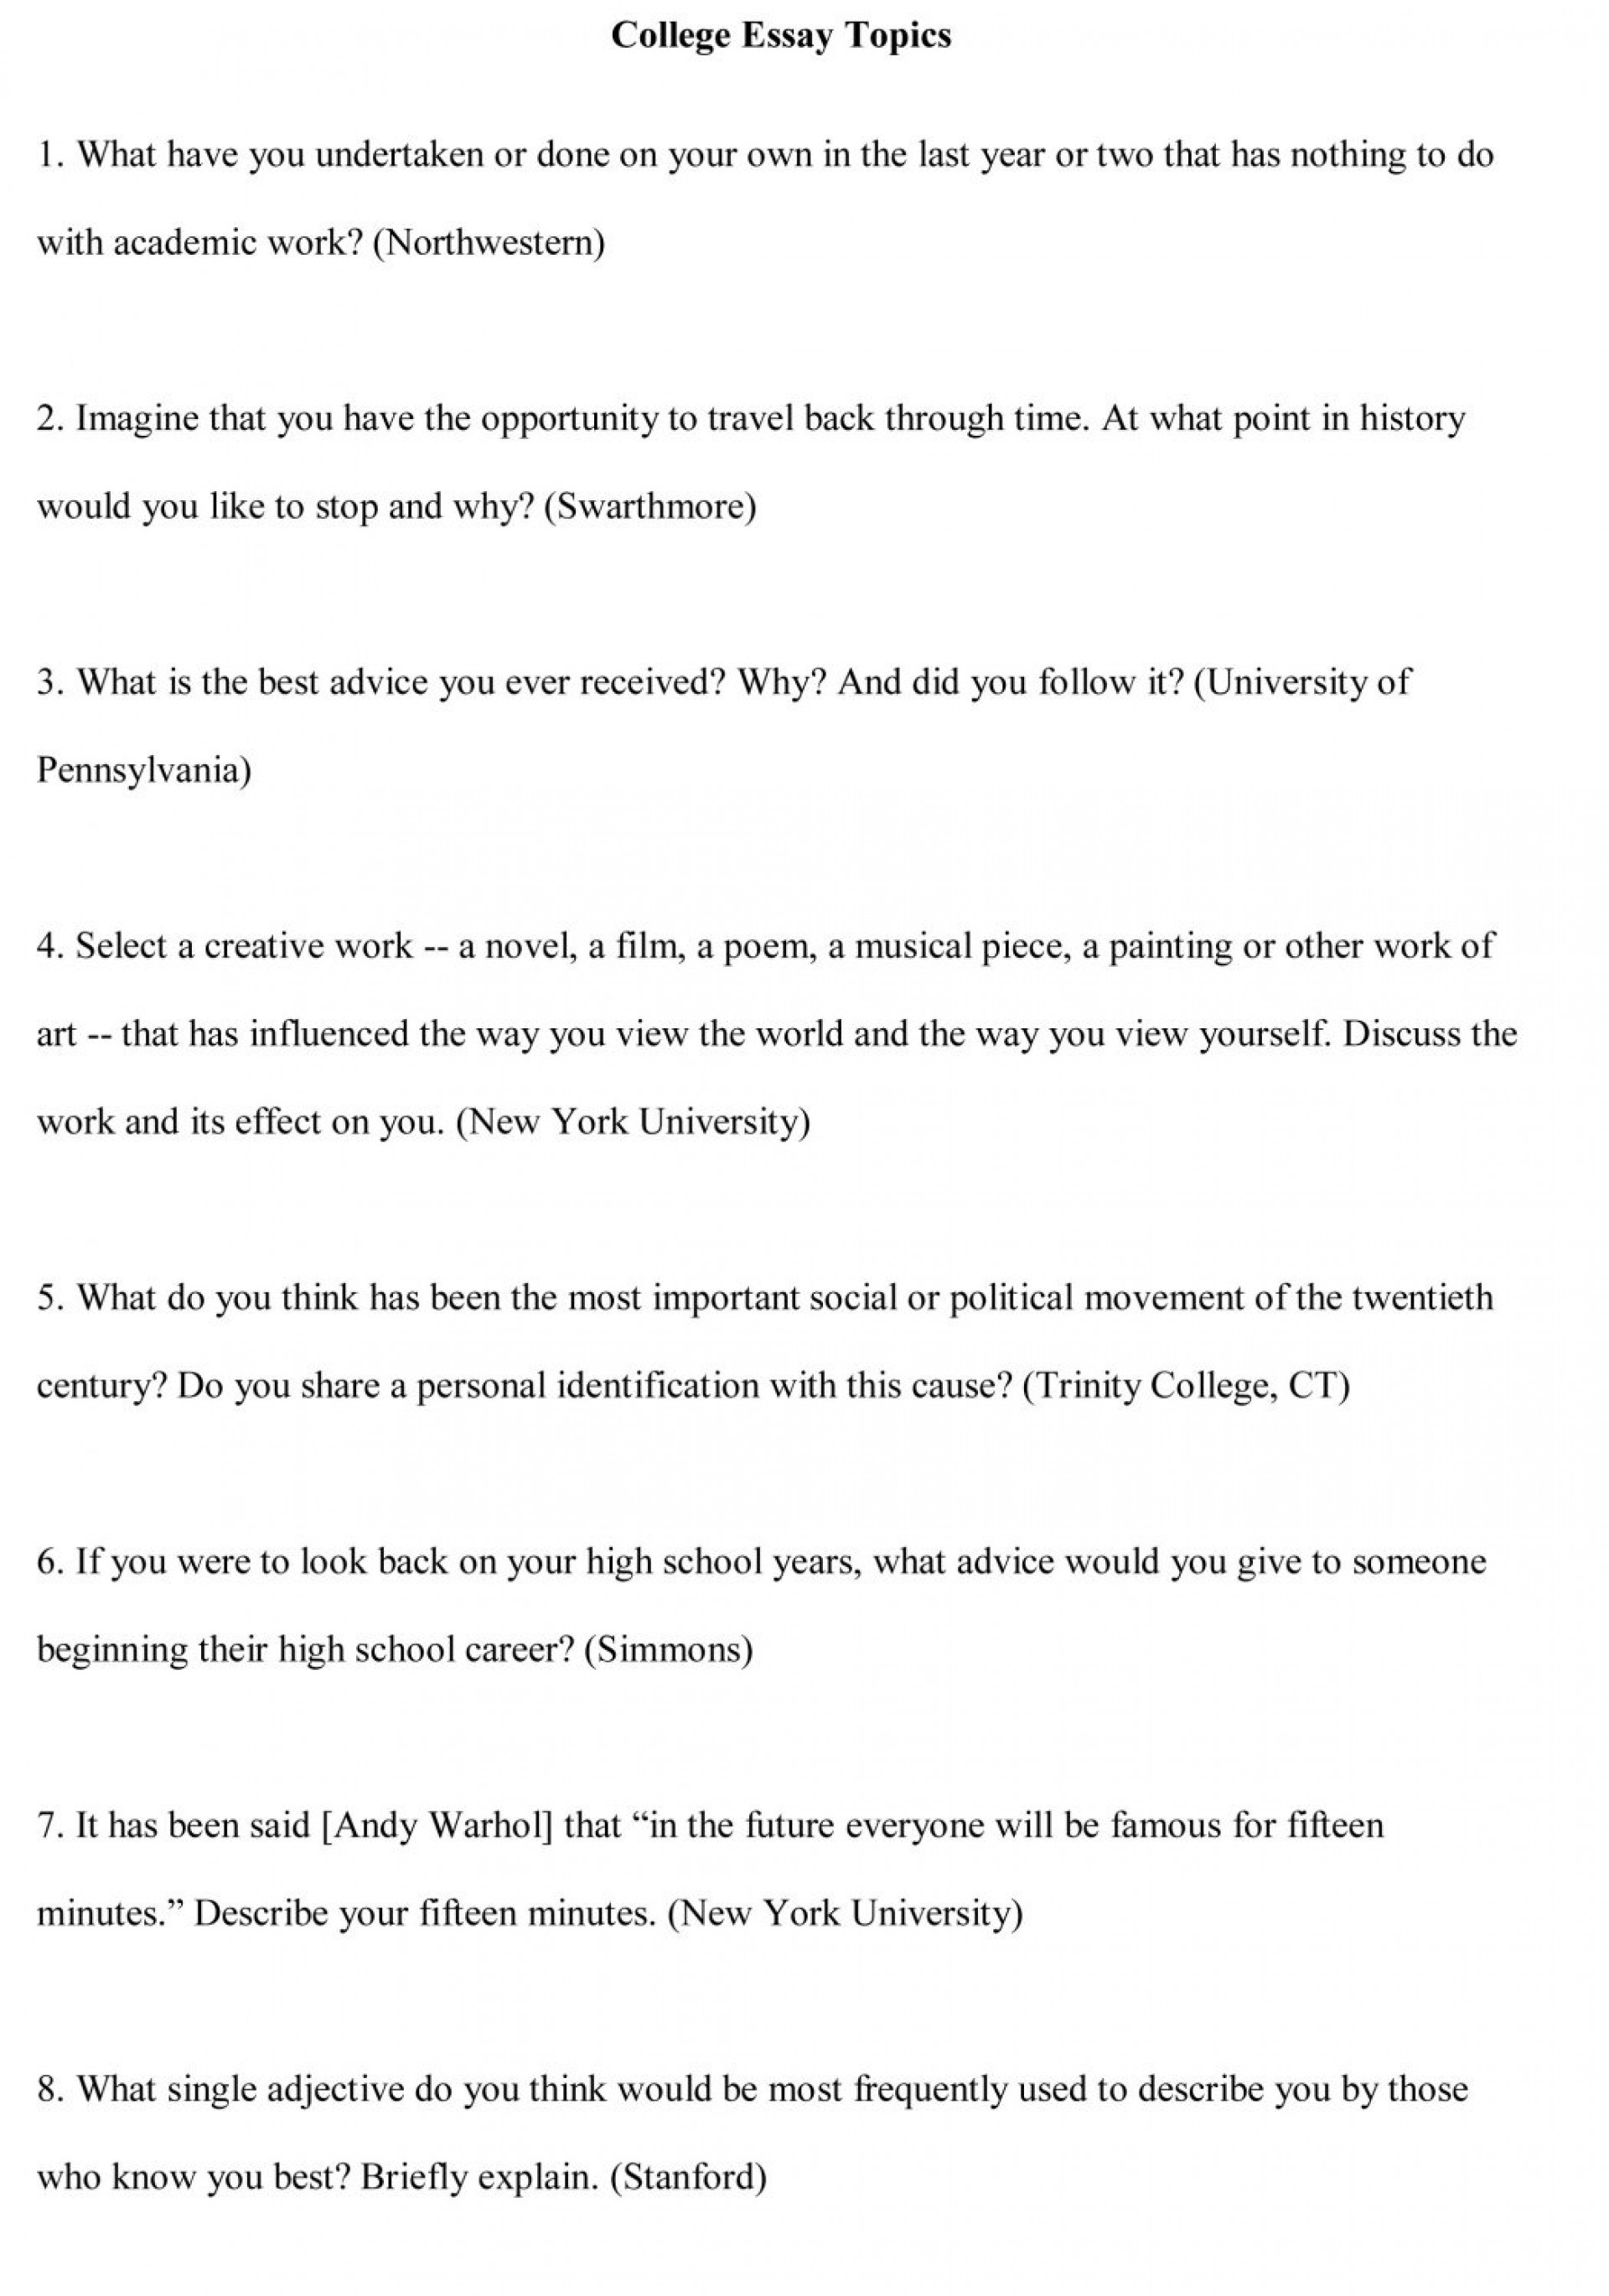 011 Cbest Essay Prompts Writing Exam California Basic Educational Tsi Prompt Examples College Topics Free Sa Example 1048x1496 Unique For Esl Students Argumentative Expository 1920